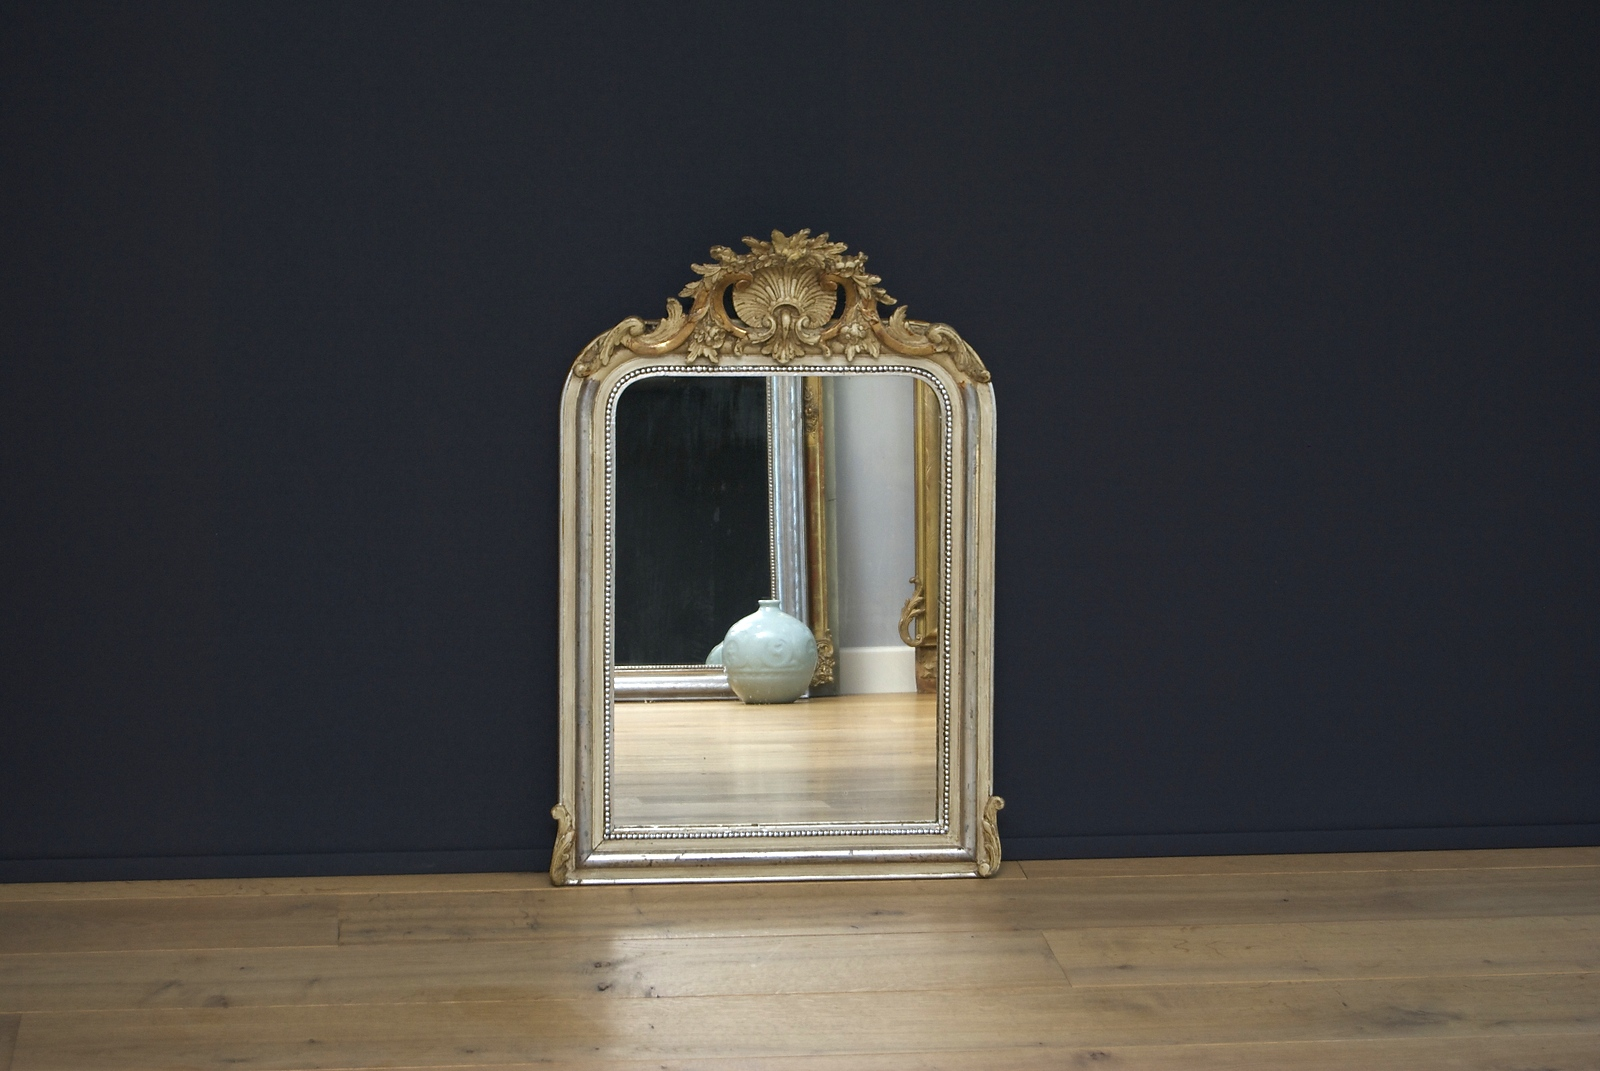 19th century antique French mirror with crest